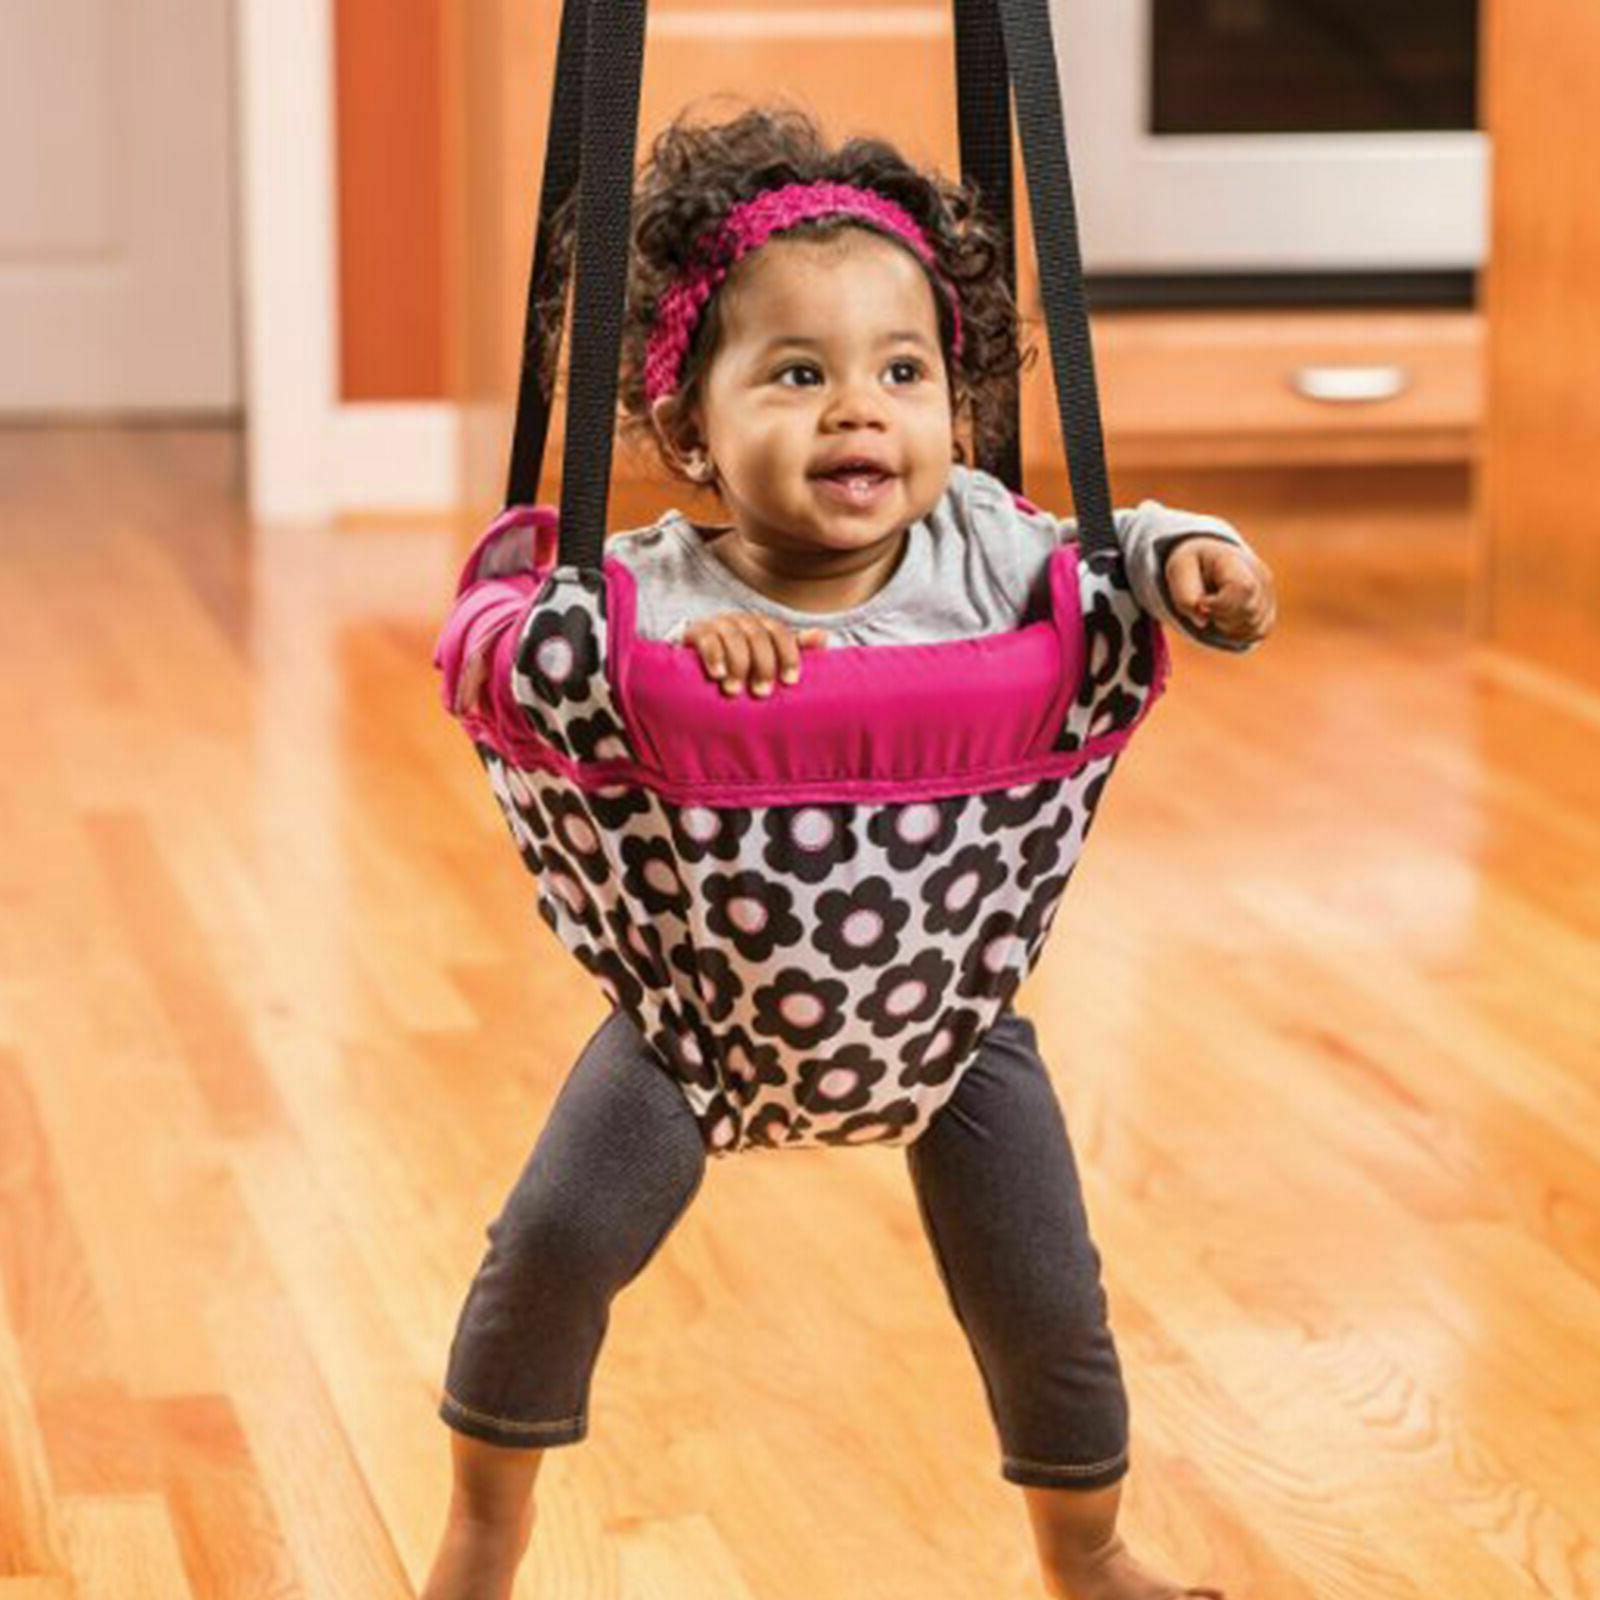 Evenflo Baby Active Jumper Bouncer Pink Flowers Mths+